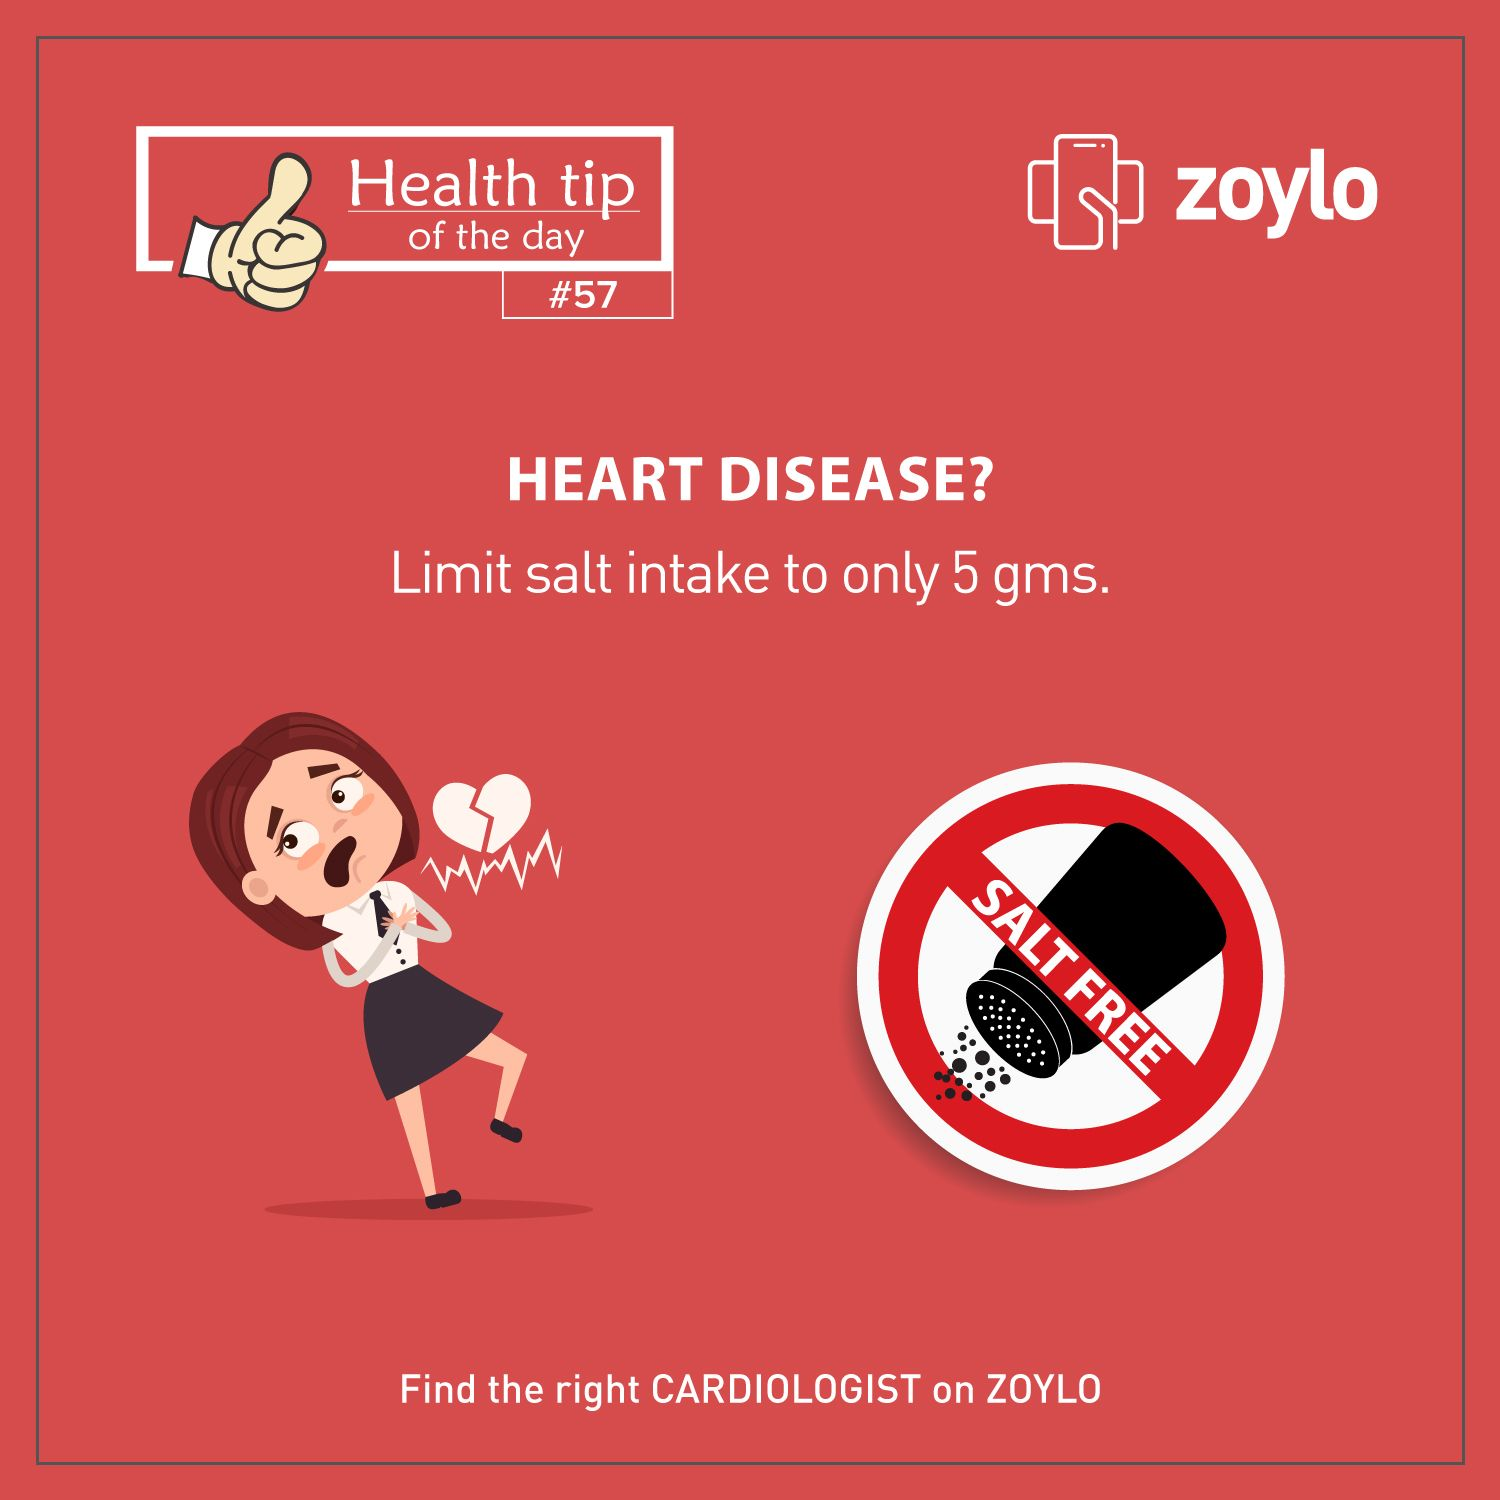 Too much of salt has adverse effects on health. Limit your